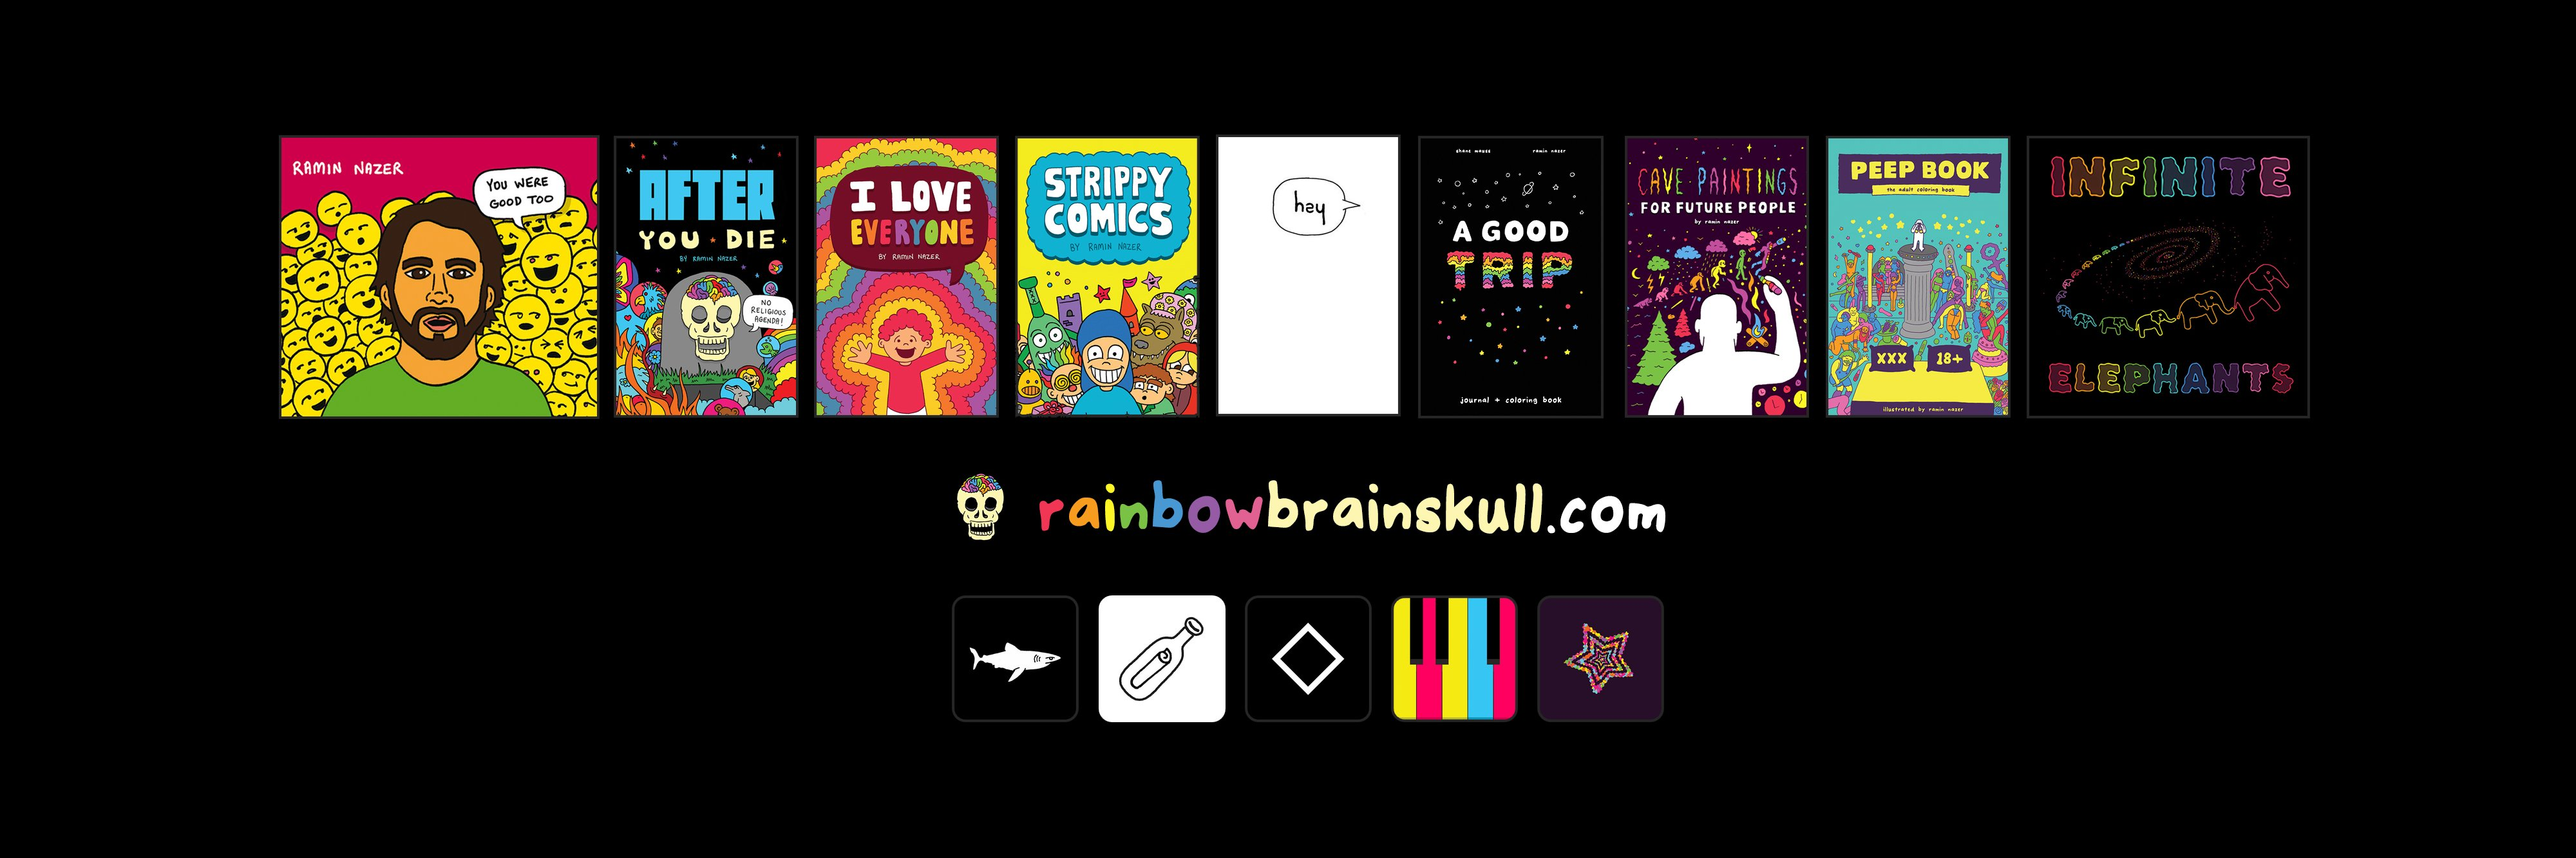 A new episode of the Rainbow Brainskull podcast with @shanecomedy just went up today! We talk about his new documen… https://t.co/lNcbkP7901